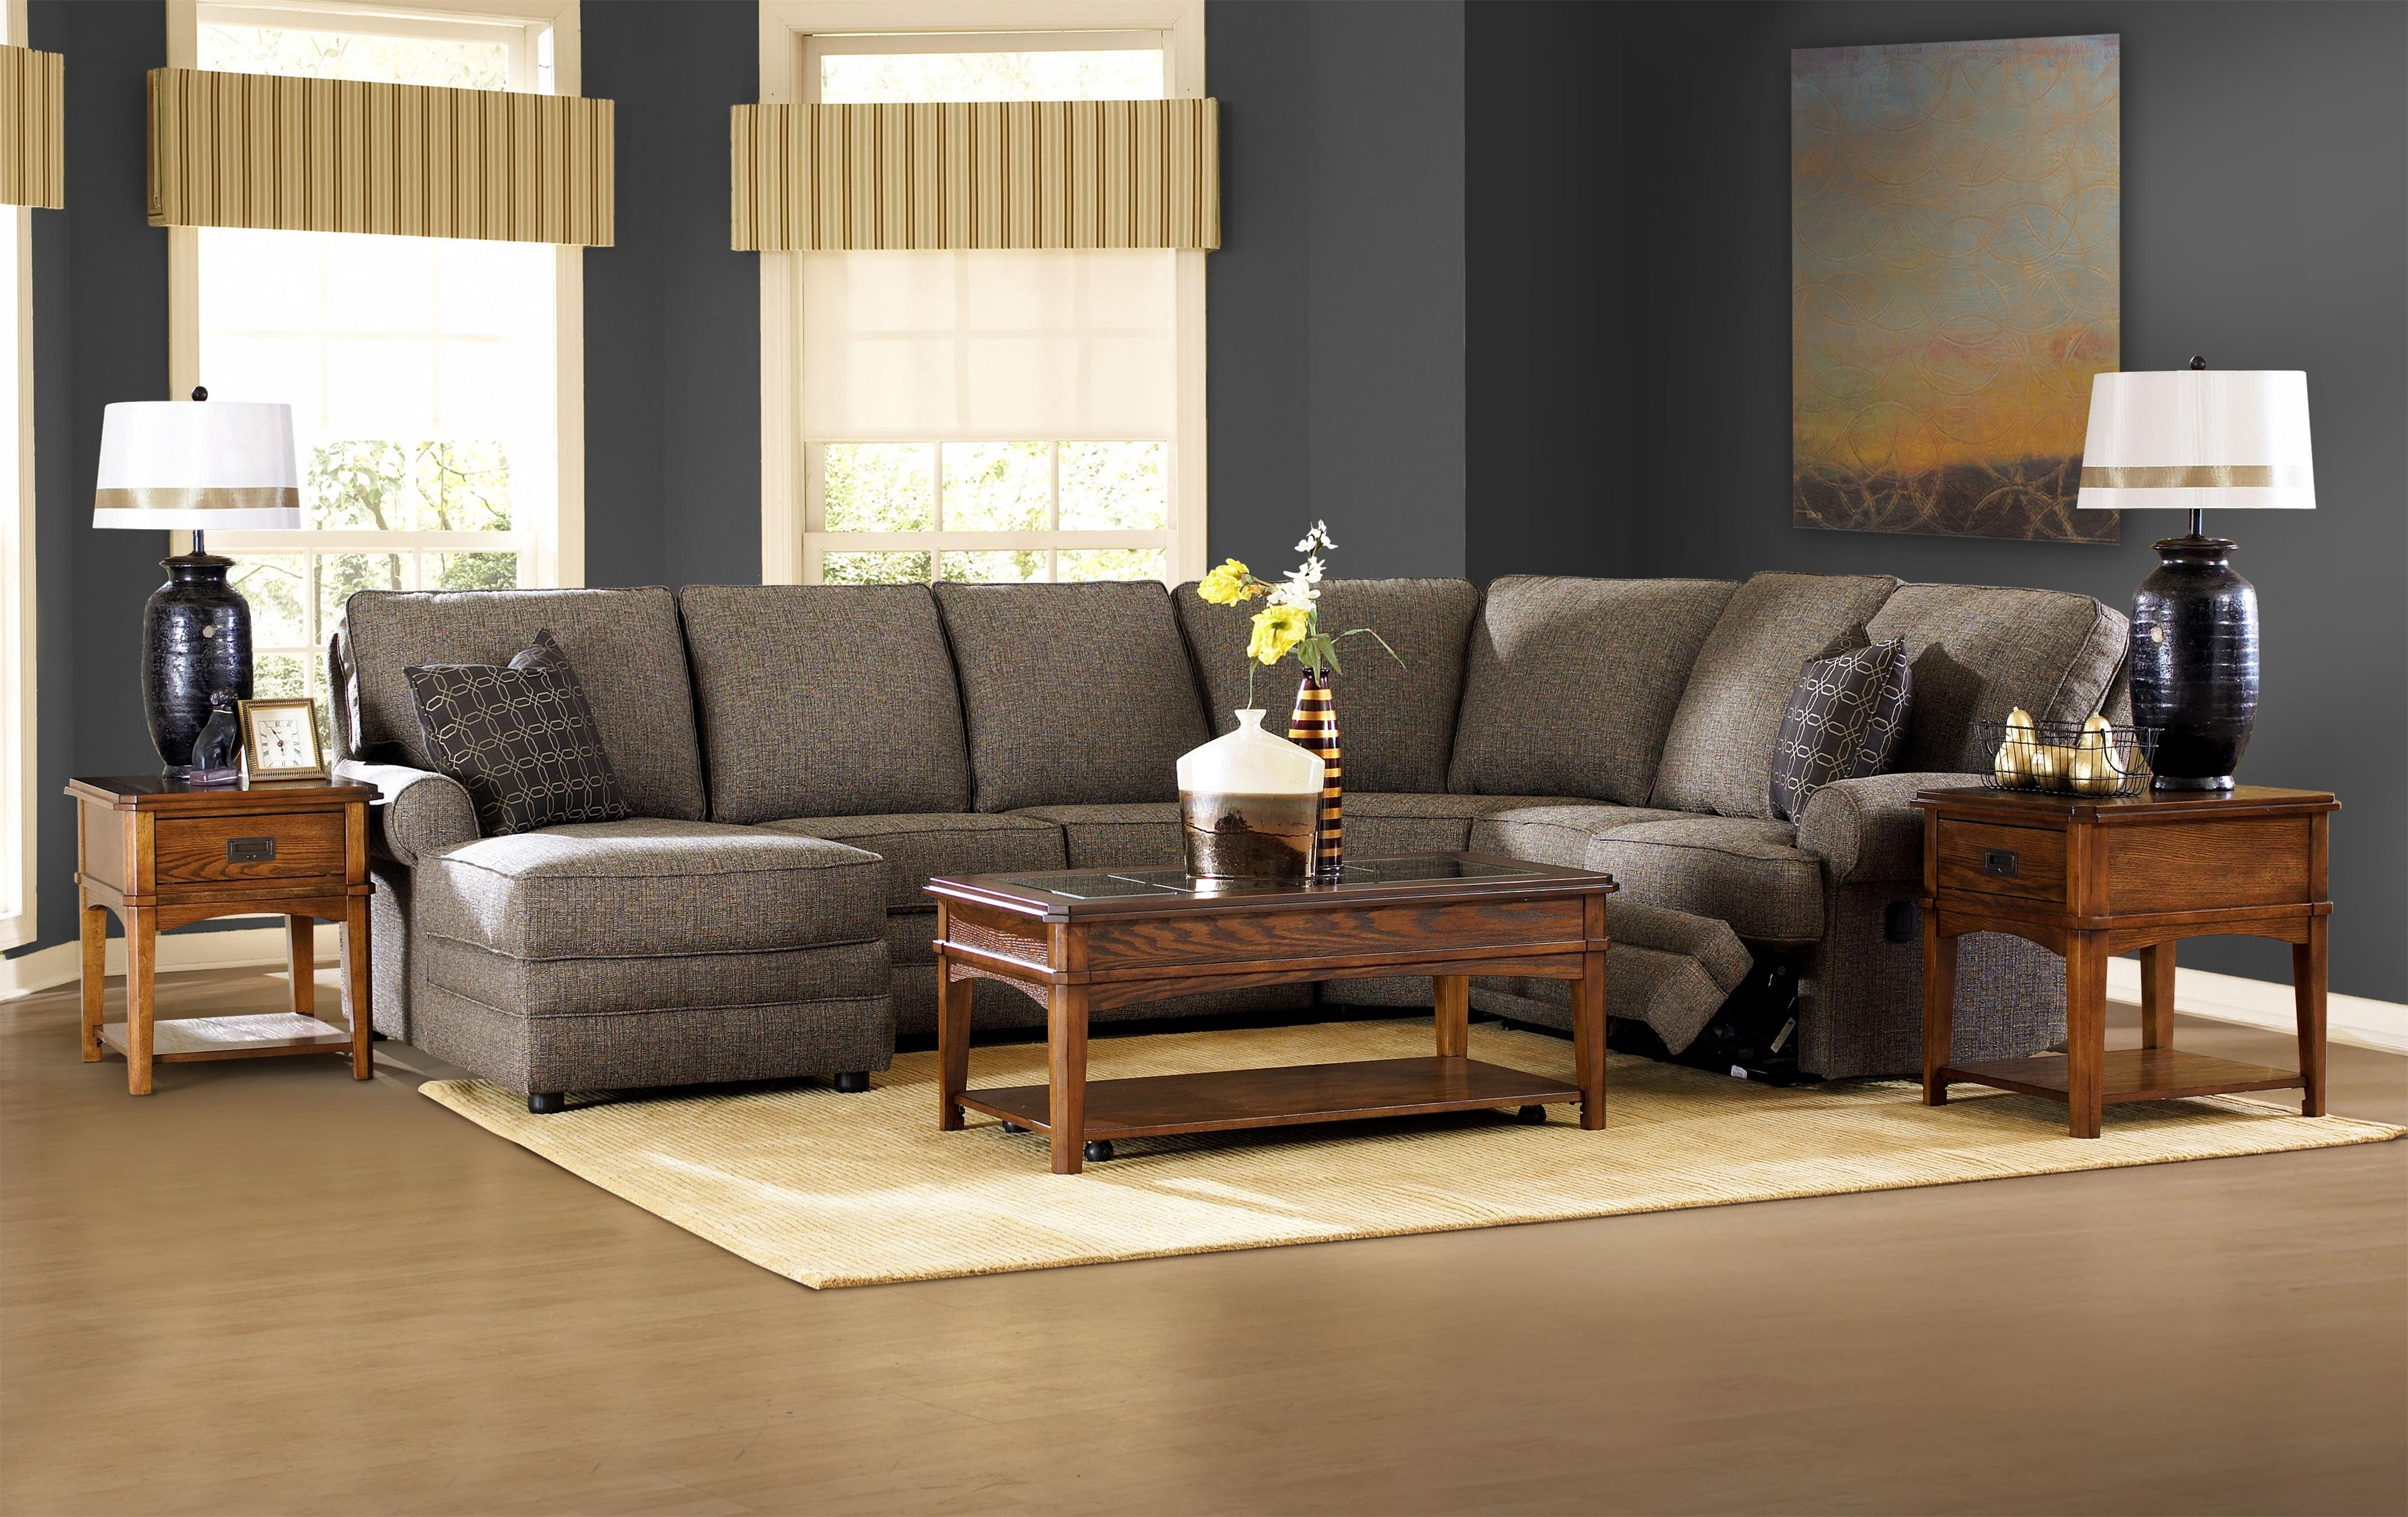 Ergonomic Sectional With Chaise And Recliner For Living Room In Best And Newest Sectionals With Chaise And Recliner (View 3 of 15)